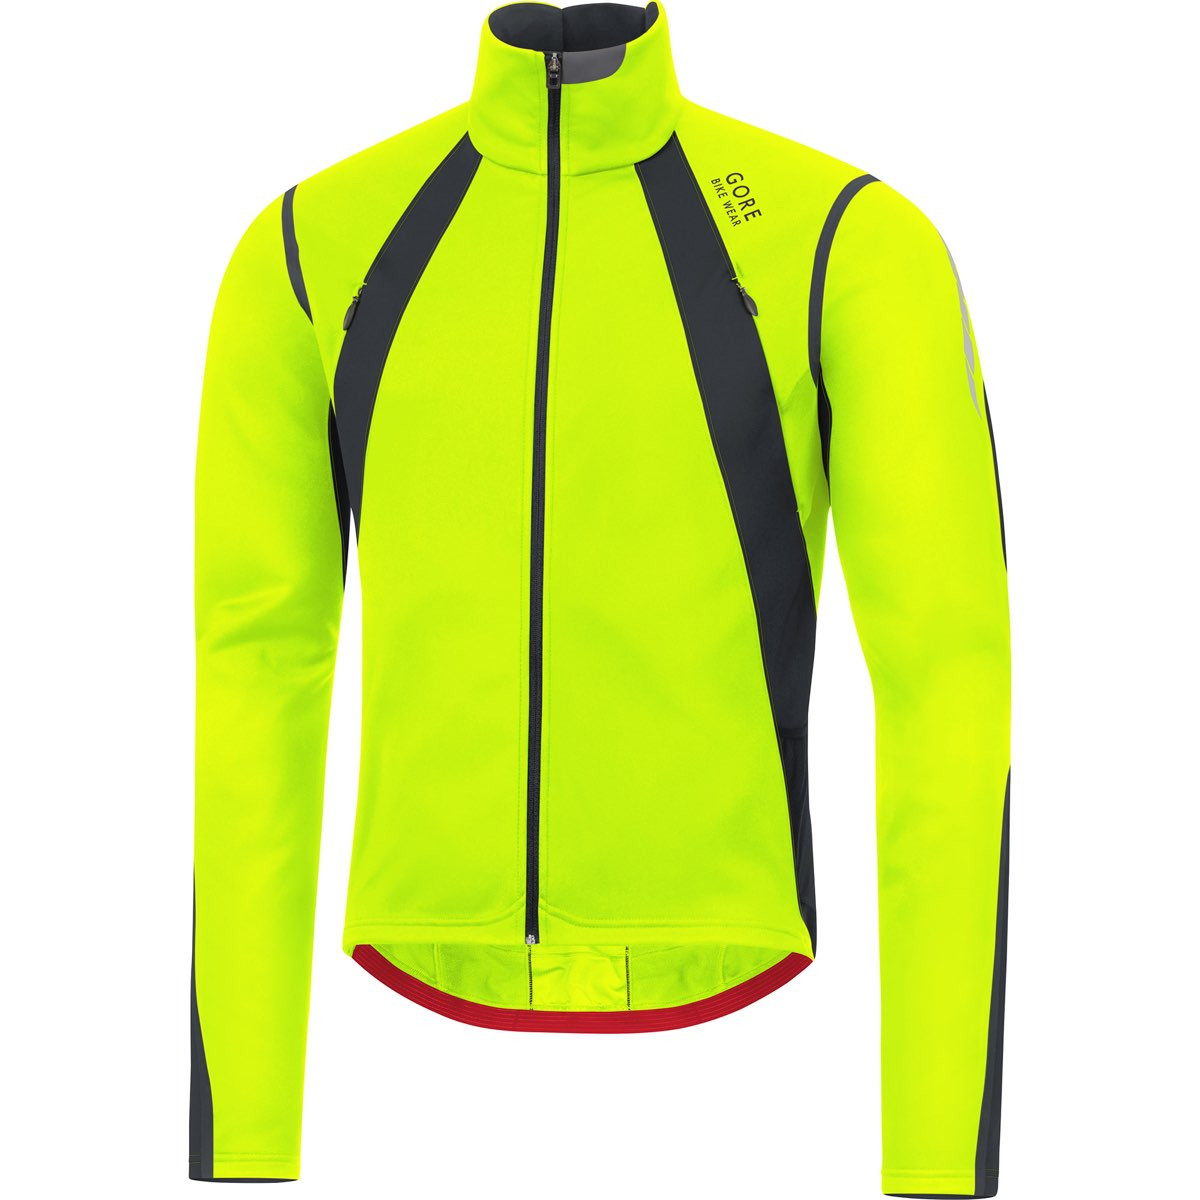 Bike Gore Wear Neon Oxygen Jacket Windstopper Gore YellowBlack QsrBtdChxo